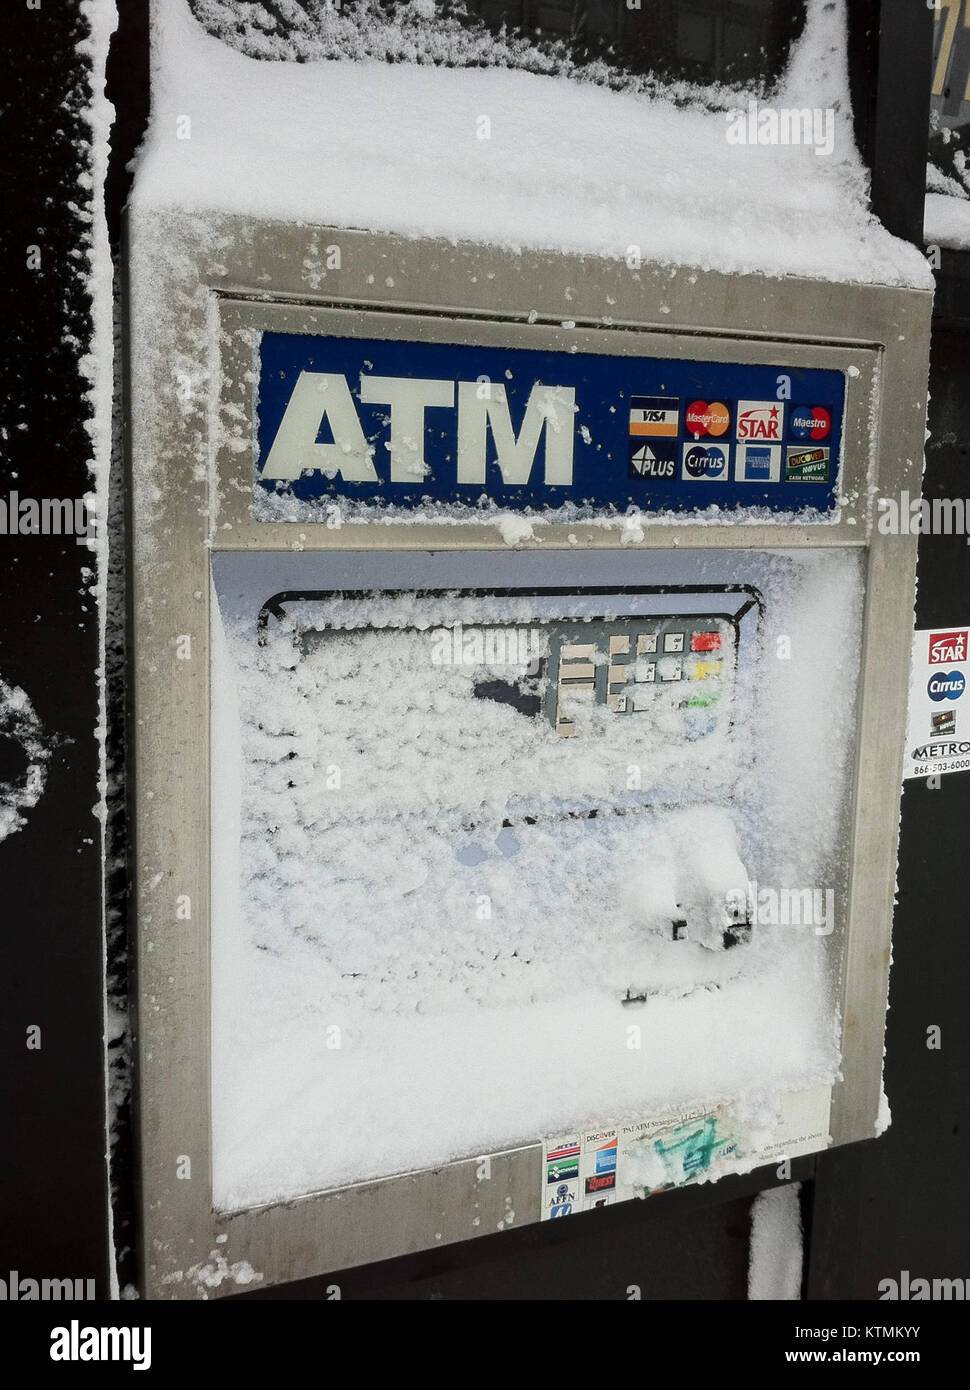 ATM Snowed Out Chicago Feb 2 2011 storm - Stock Image